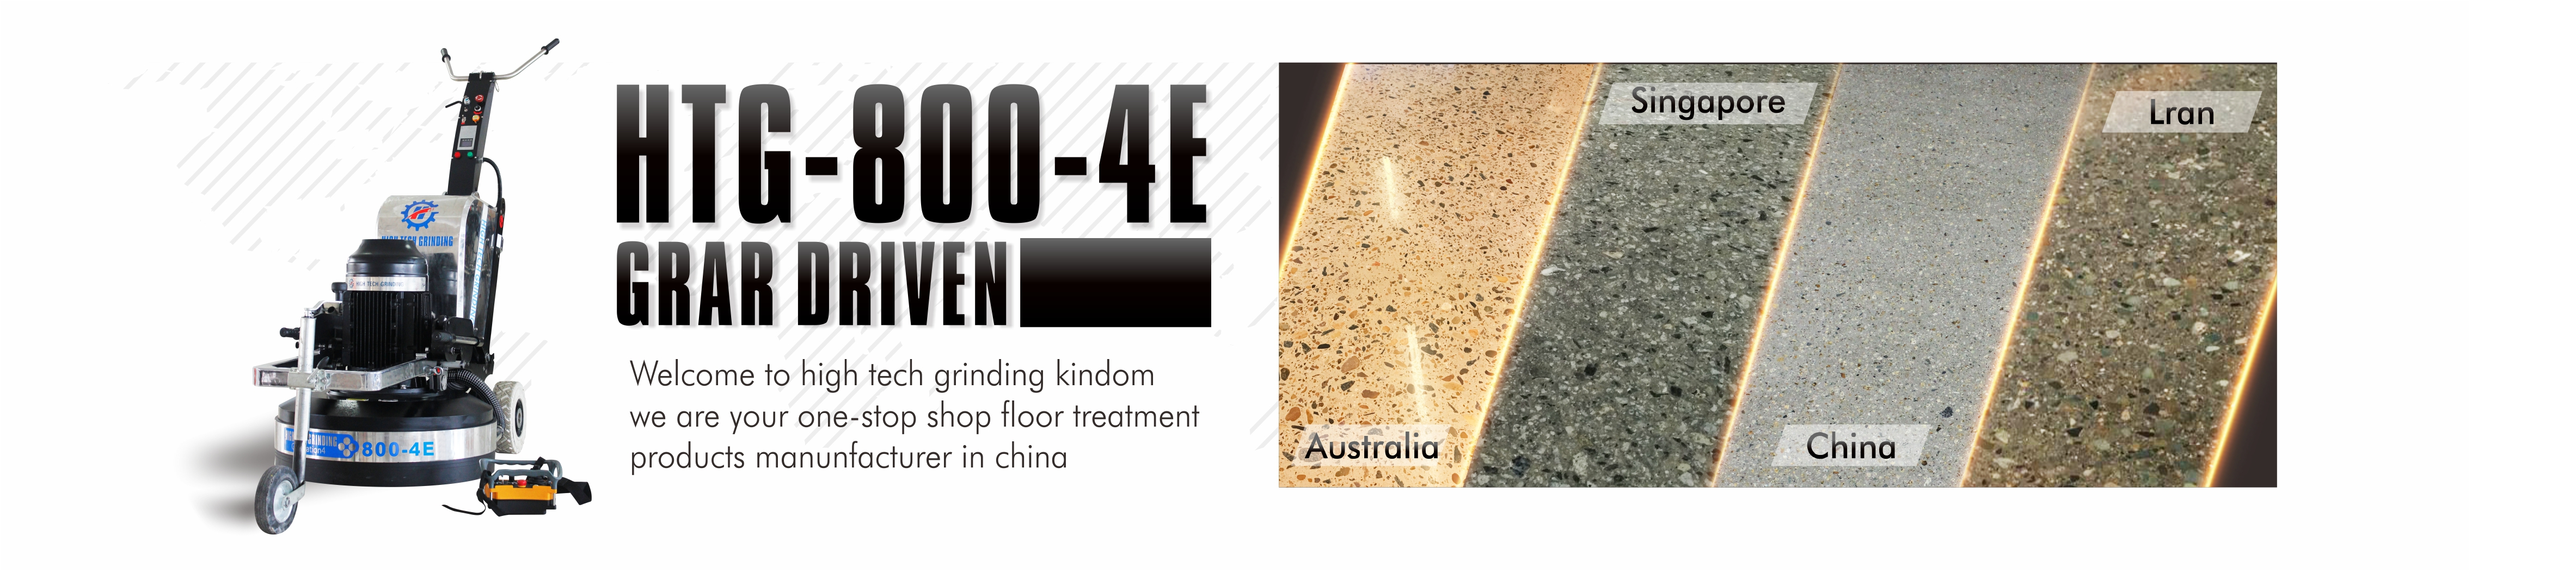 Concrete Polishing System